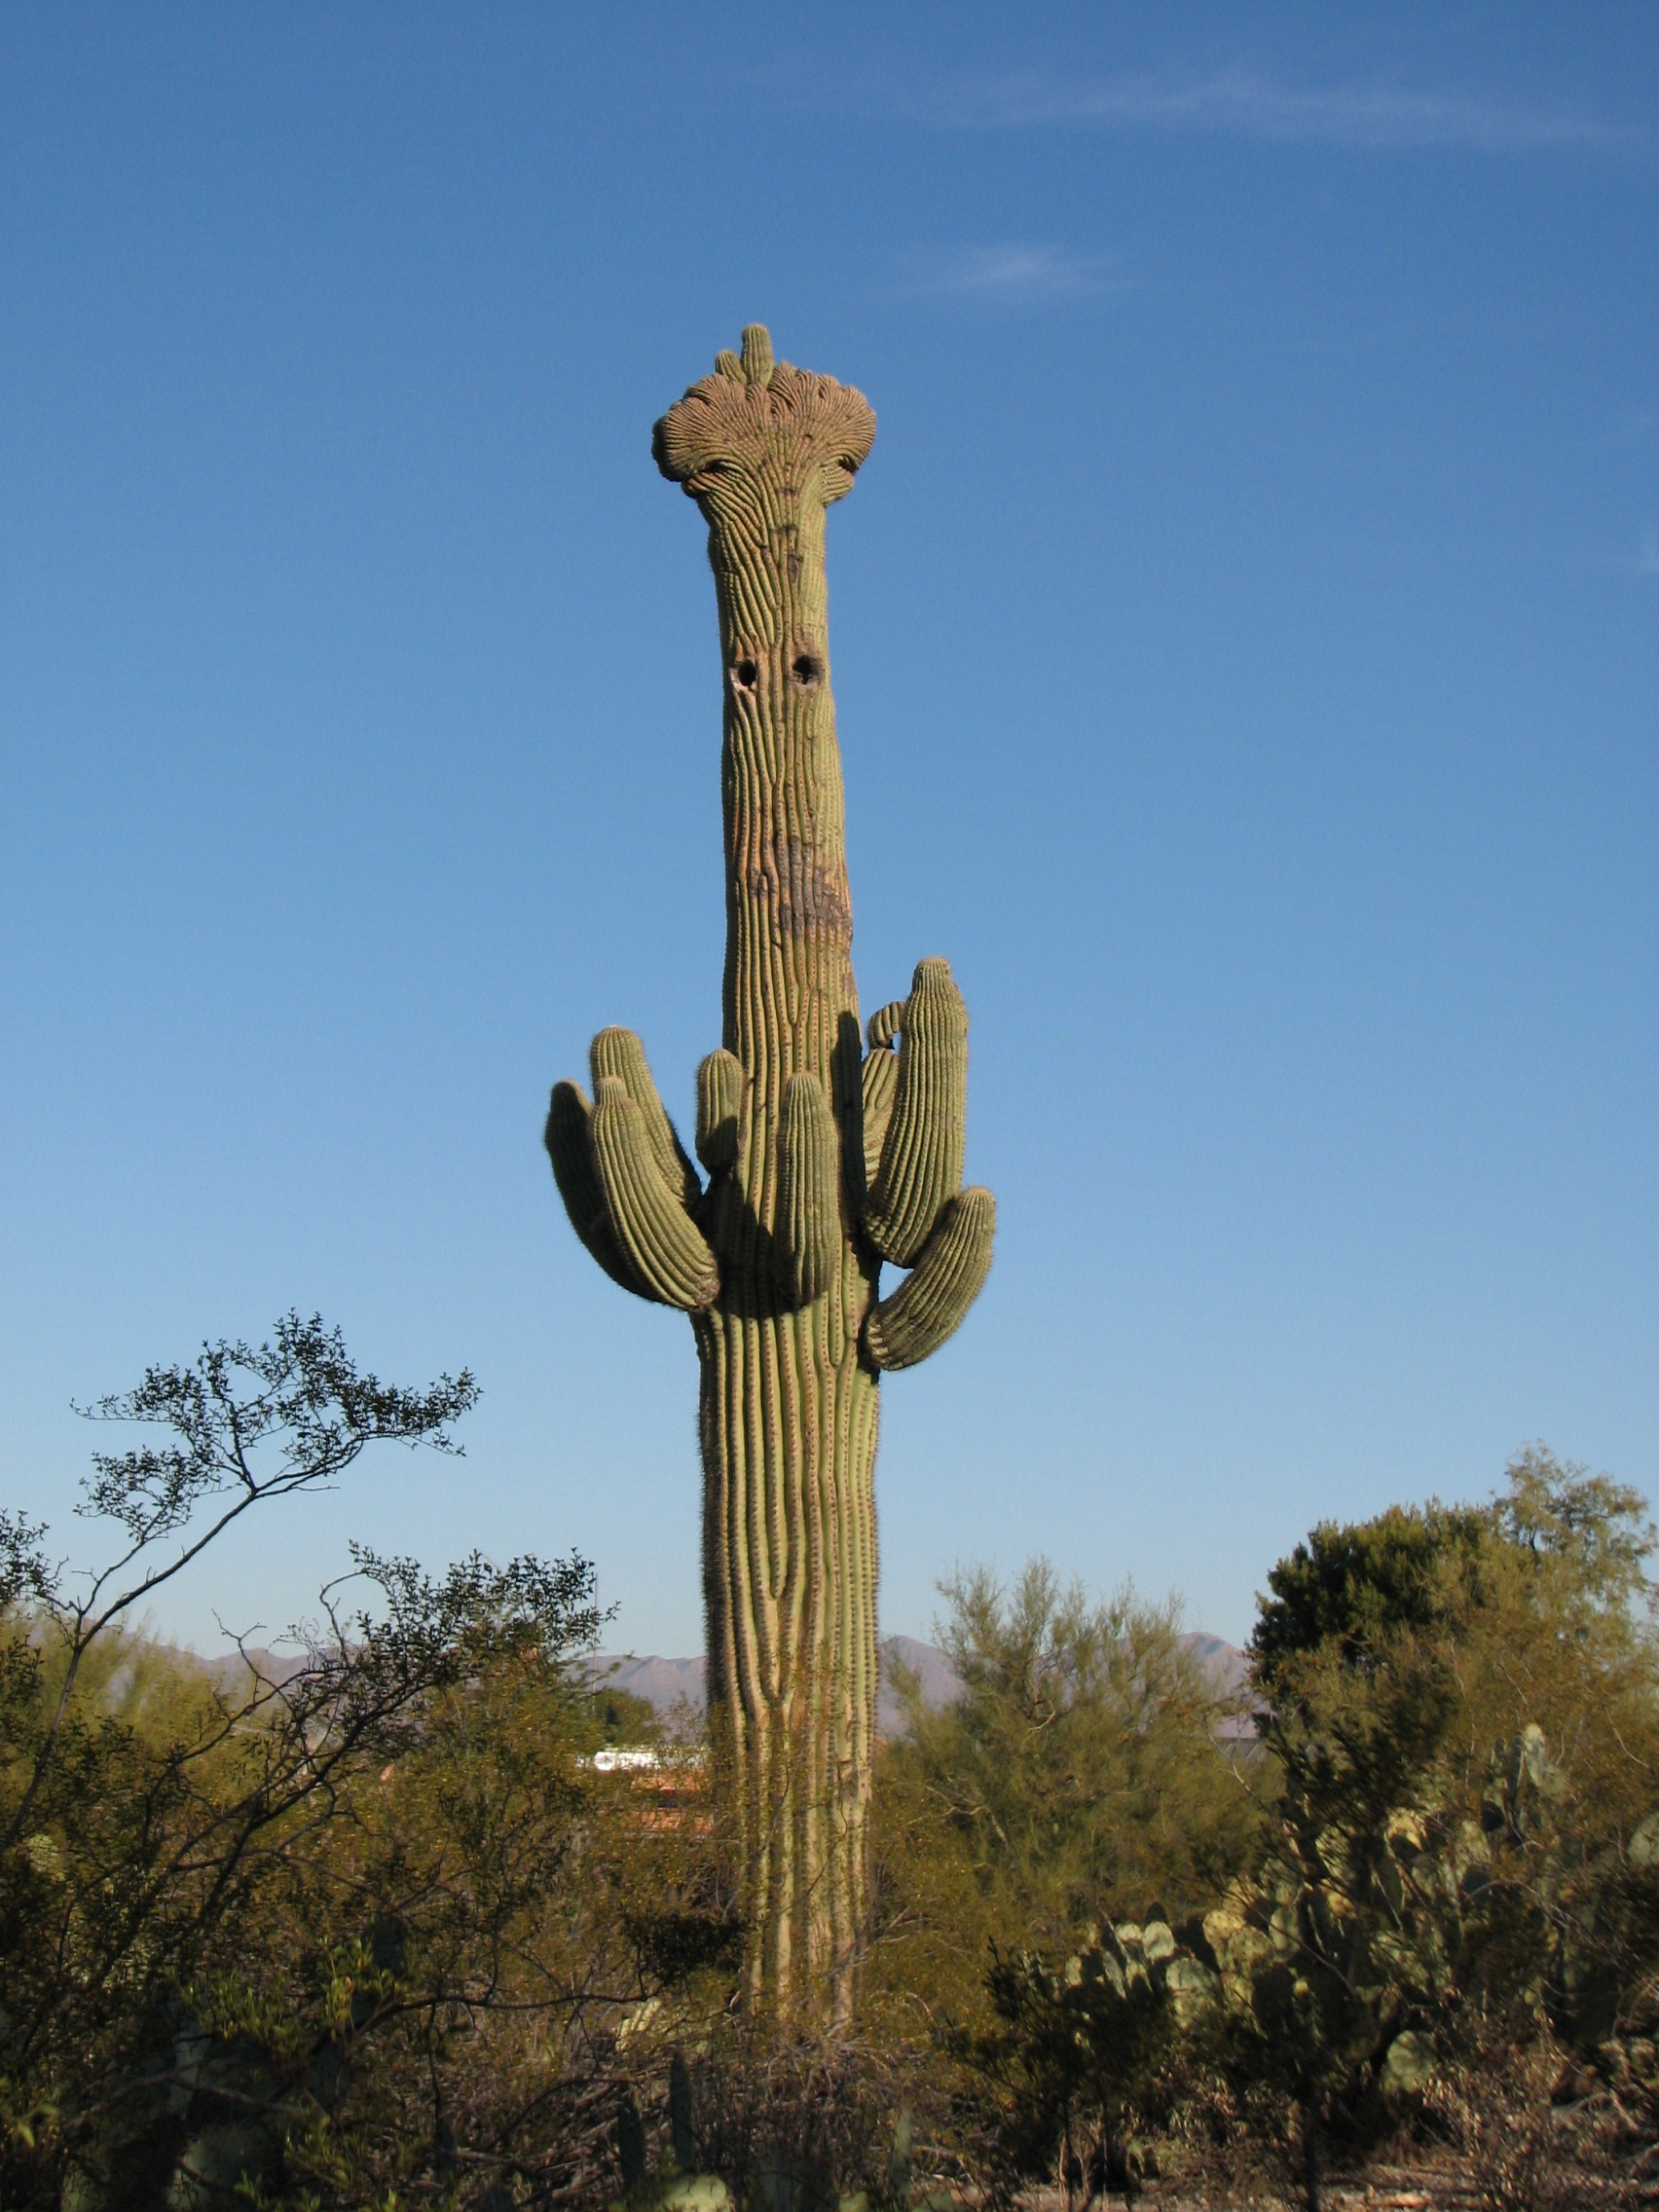 a crested saguaro at tohono chul park in casas adobes arizona